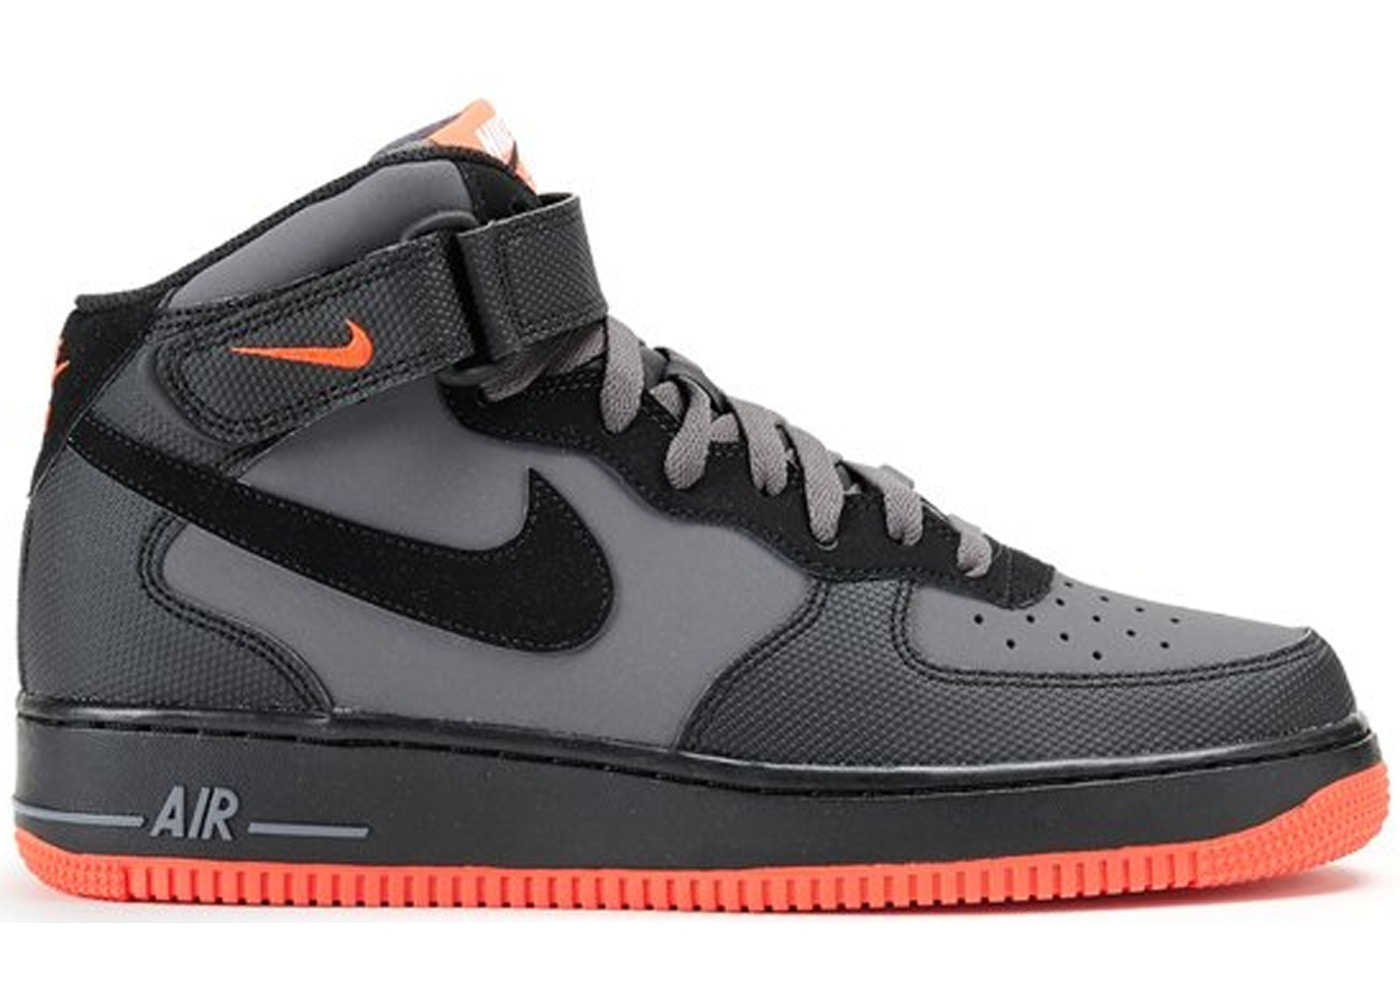 Nike Air Force 1 Mid Hot Lava (2015) - 315123-031